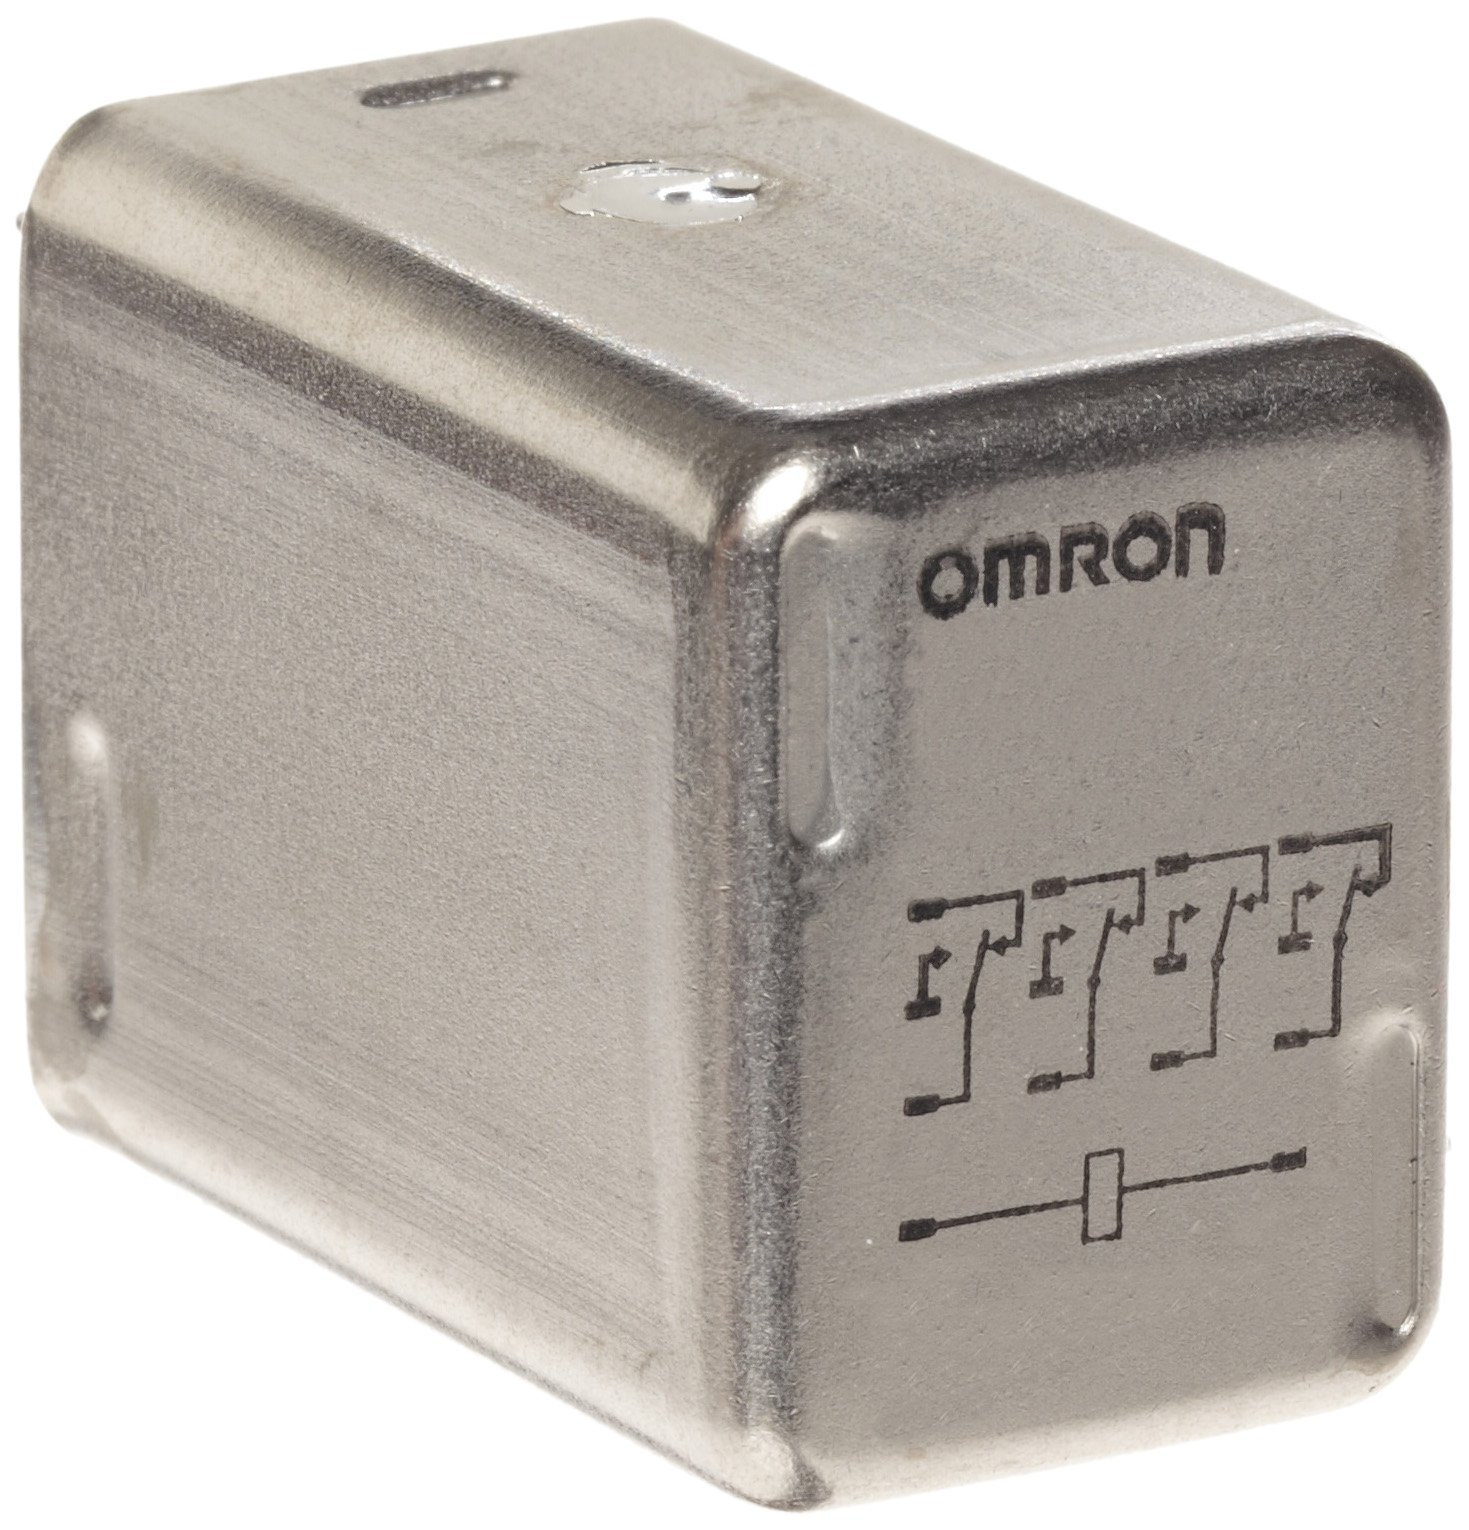 Omron MY4ZH-US AC110/120 Hermetically Sealed Relay, Class 1 Division 2 Approval, Plug-In Socket/Solder Terminal, Quadruple Pole Double Throw Bifurcated Contacts, 9.9 to 10.8 mA at 50 Hz and 8.49 to 9.2 mA at 60 Hz Rated Load Current, 110 to 120 VAC Rated  by Omron (Image #1)